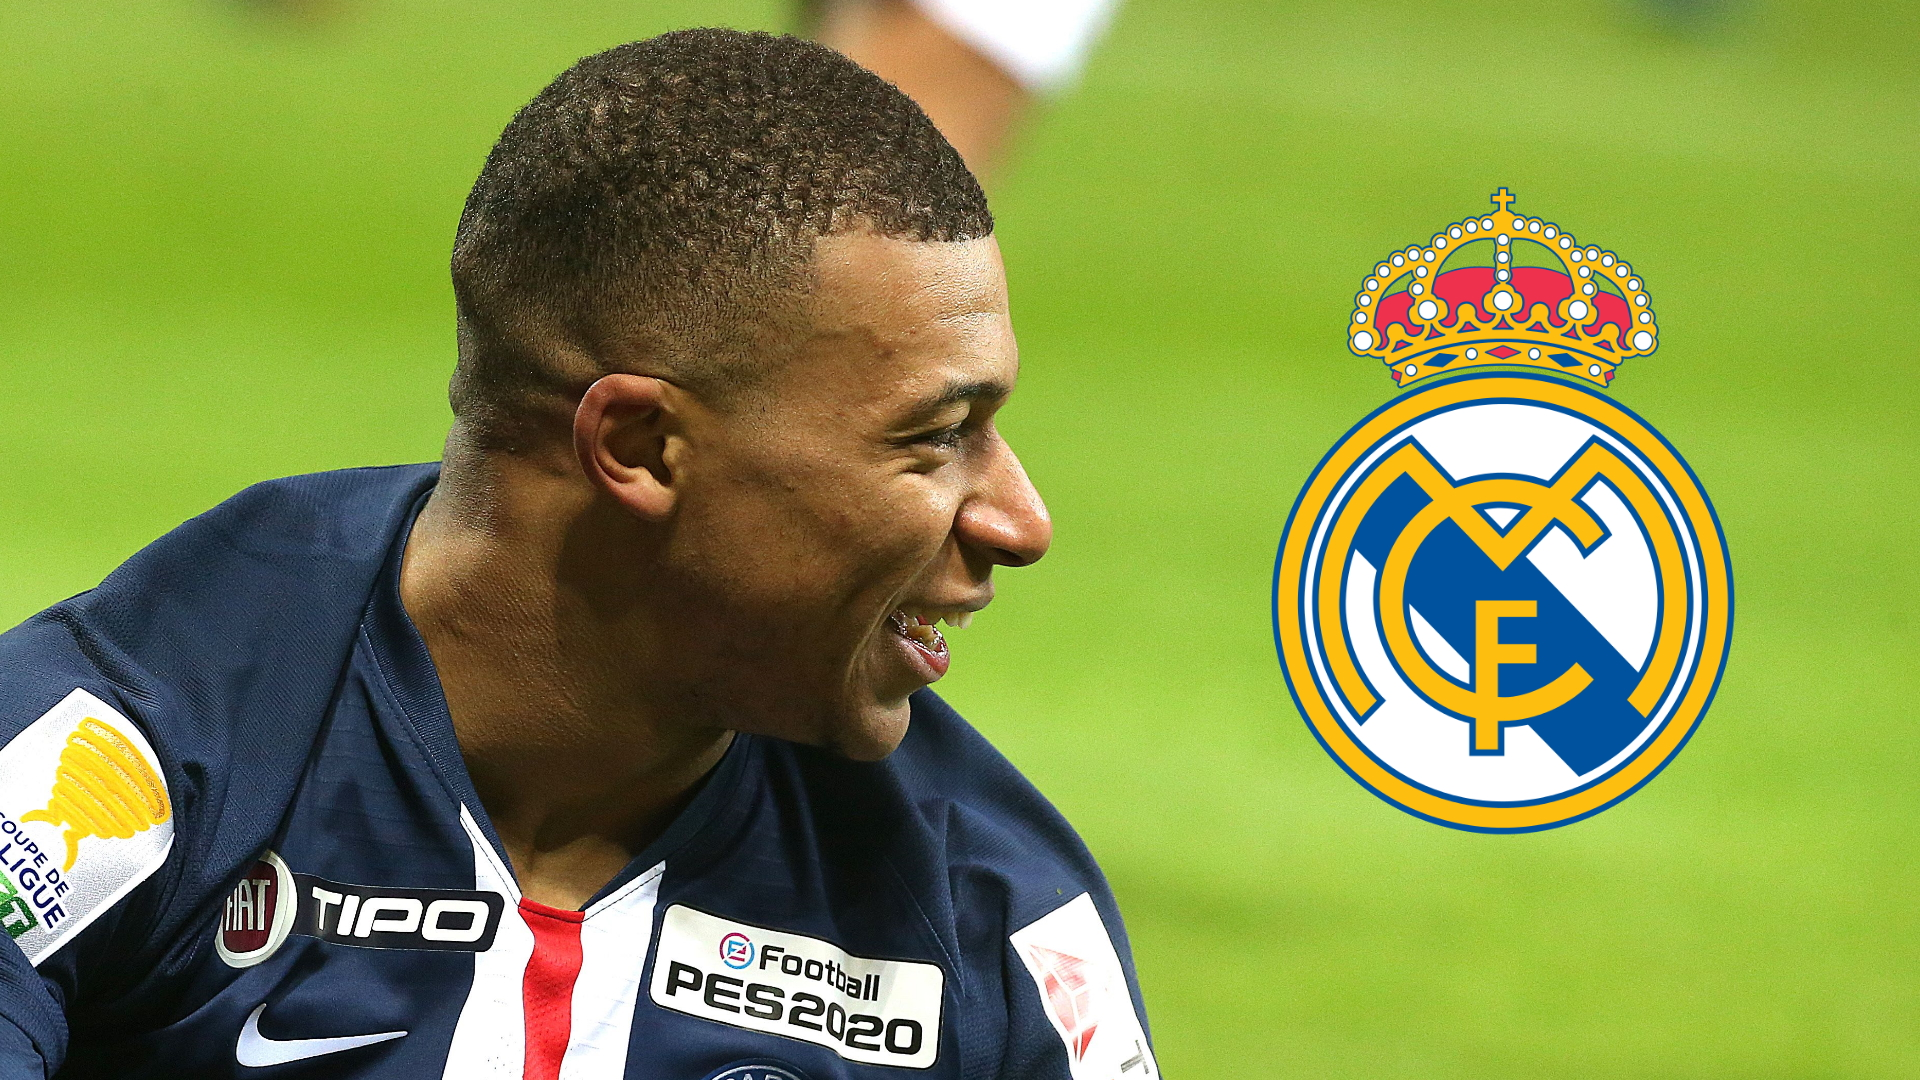 'Mbappe was seriously thinking about Real Madrid move' – Emery talked PSG star into staying put